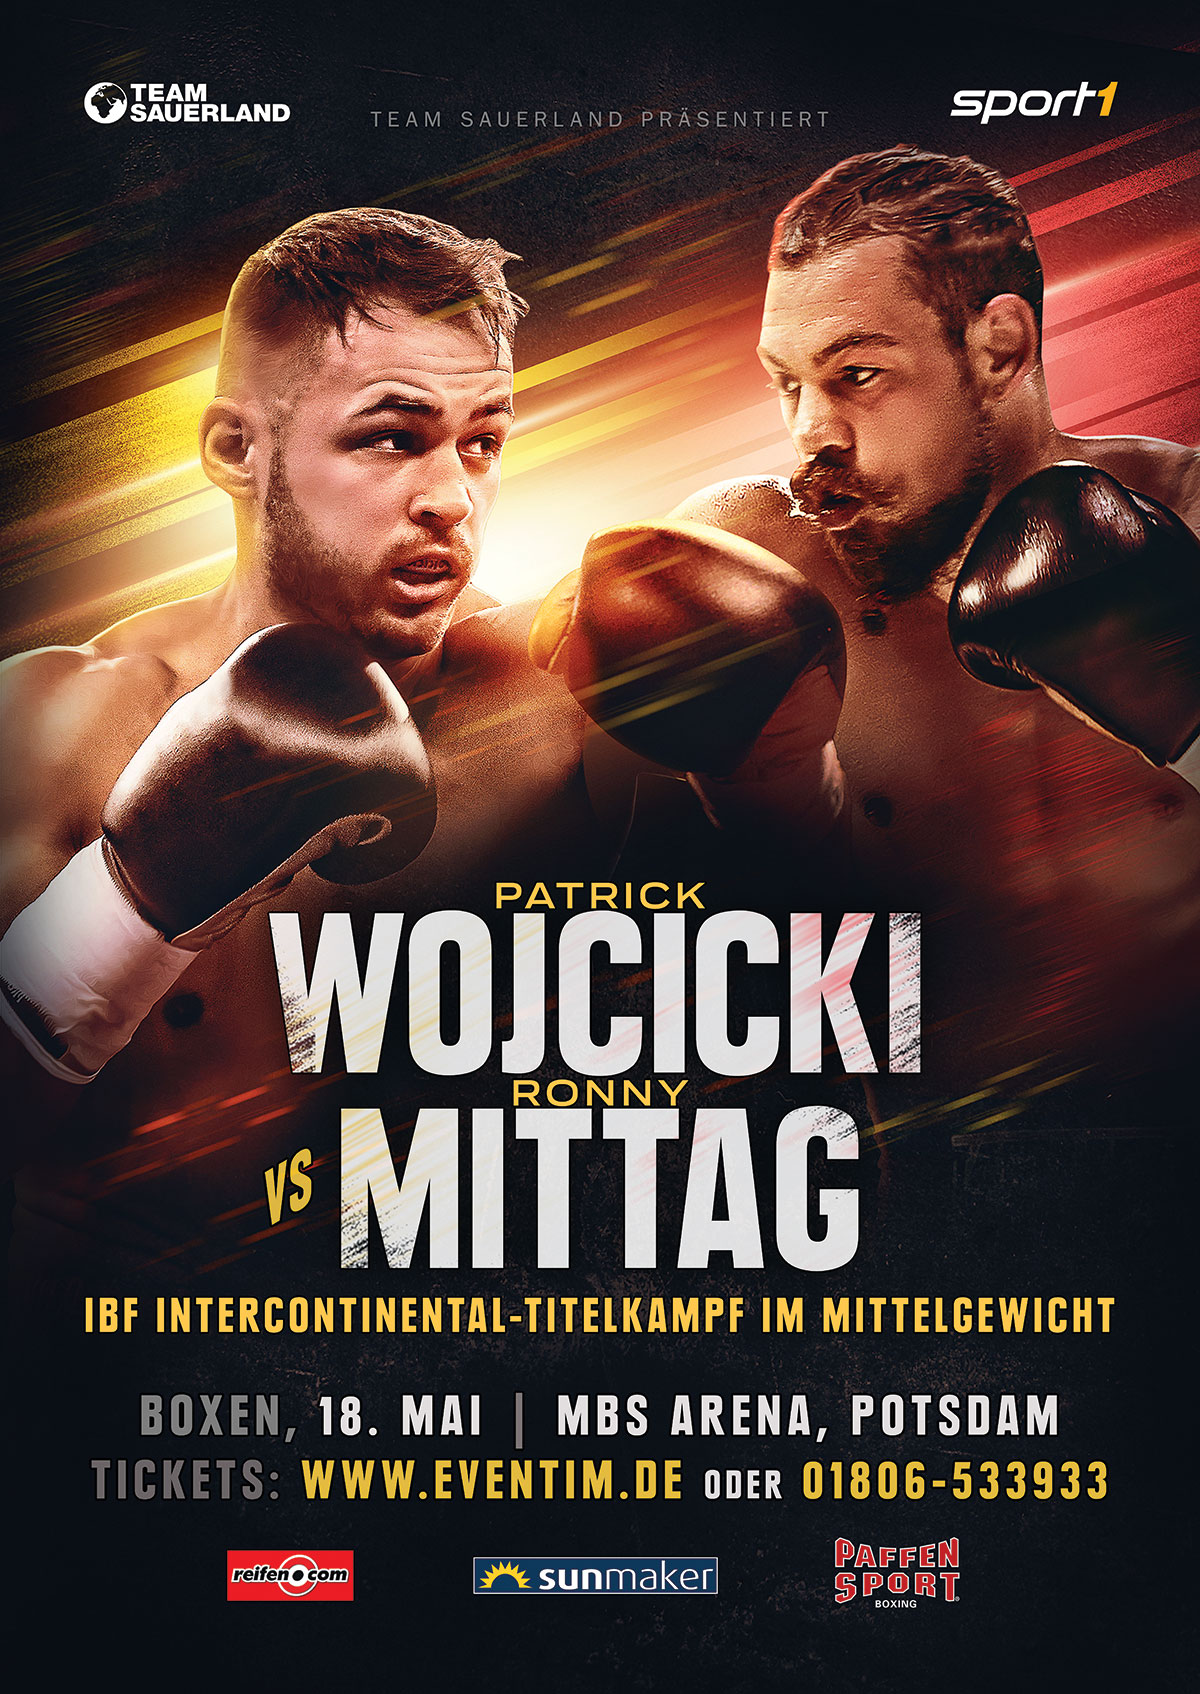 poster for Patrick Wojcicki's fight against Ronny Mittag in Potsdam, Germany